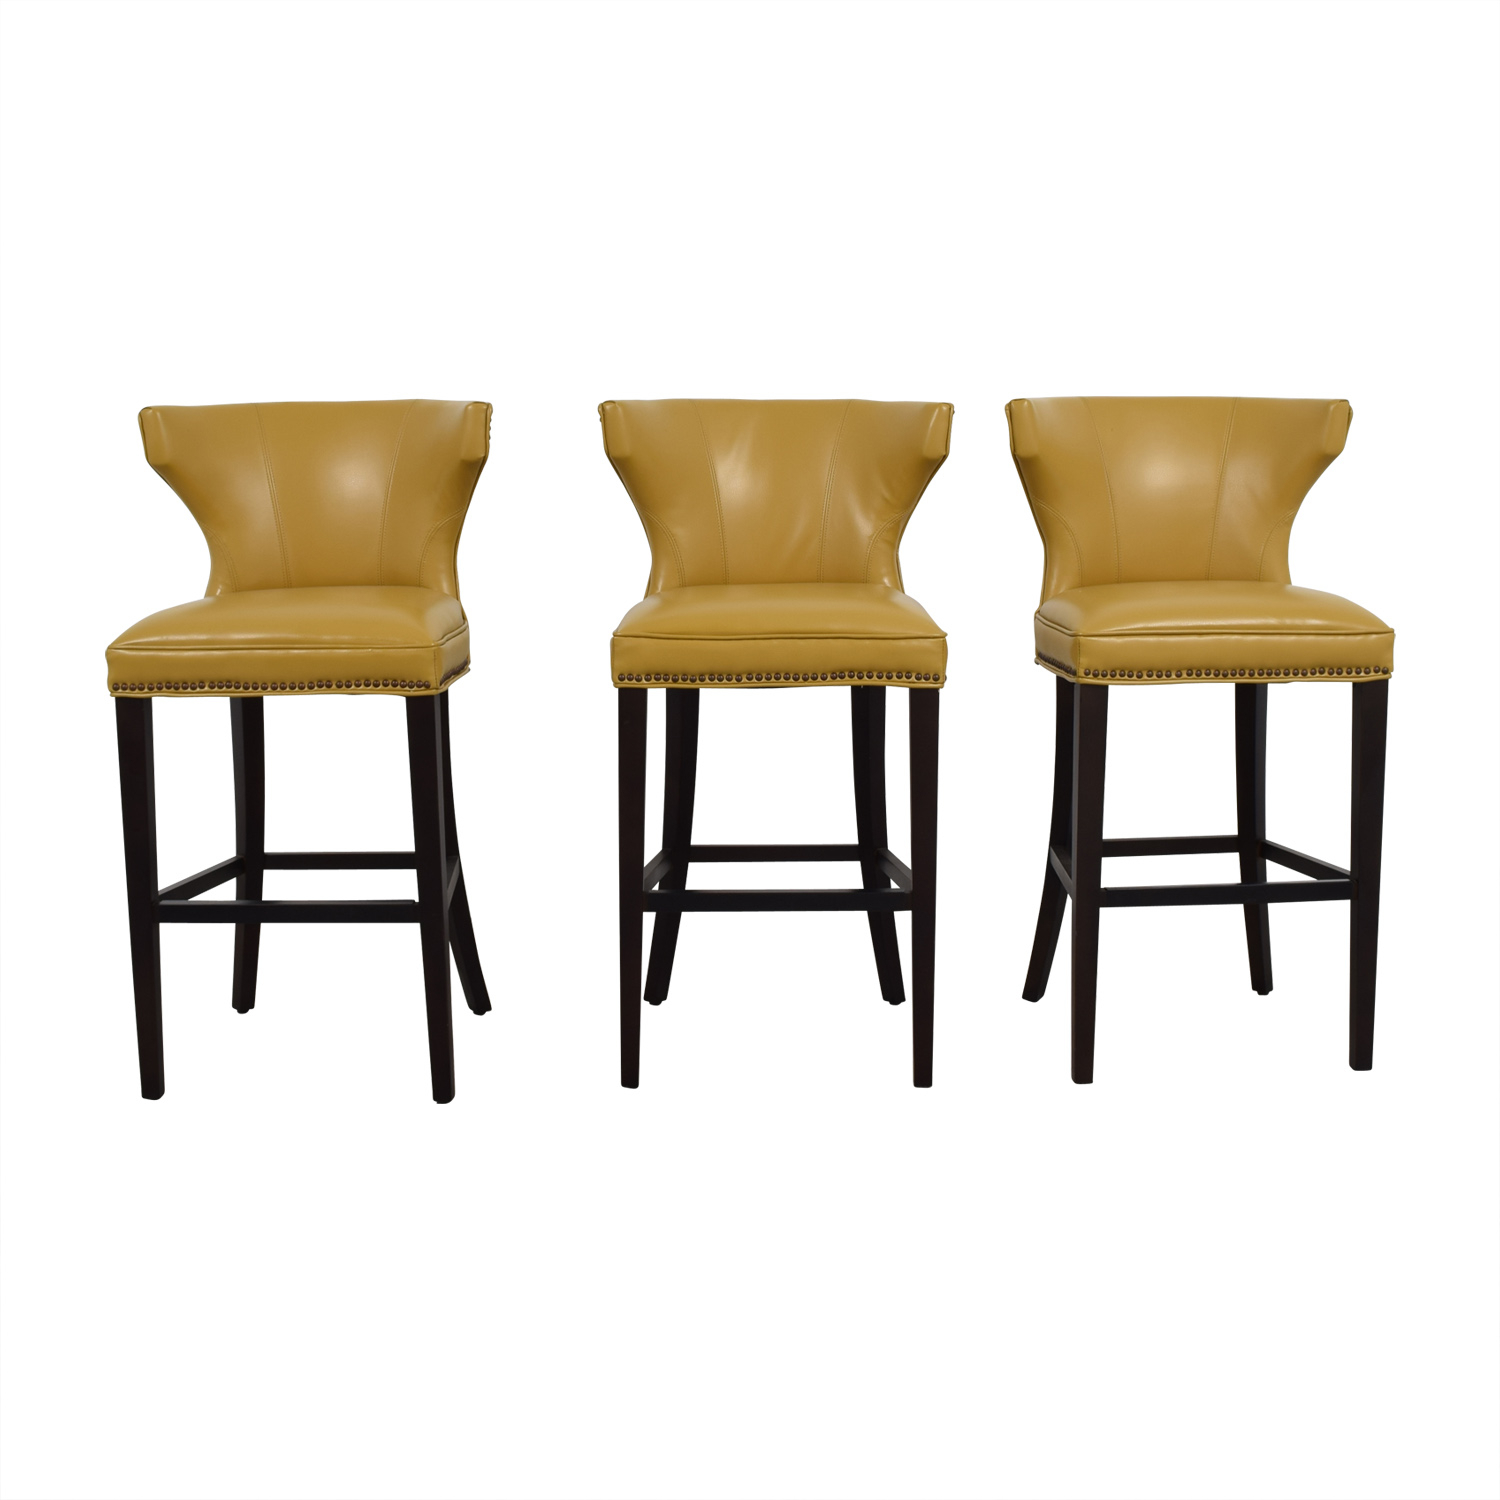 72% Off - Grandin Road Grandin Road Mustard Yellow Bar Stools / Chairs in Grandin Leather Sofa Chairs